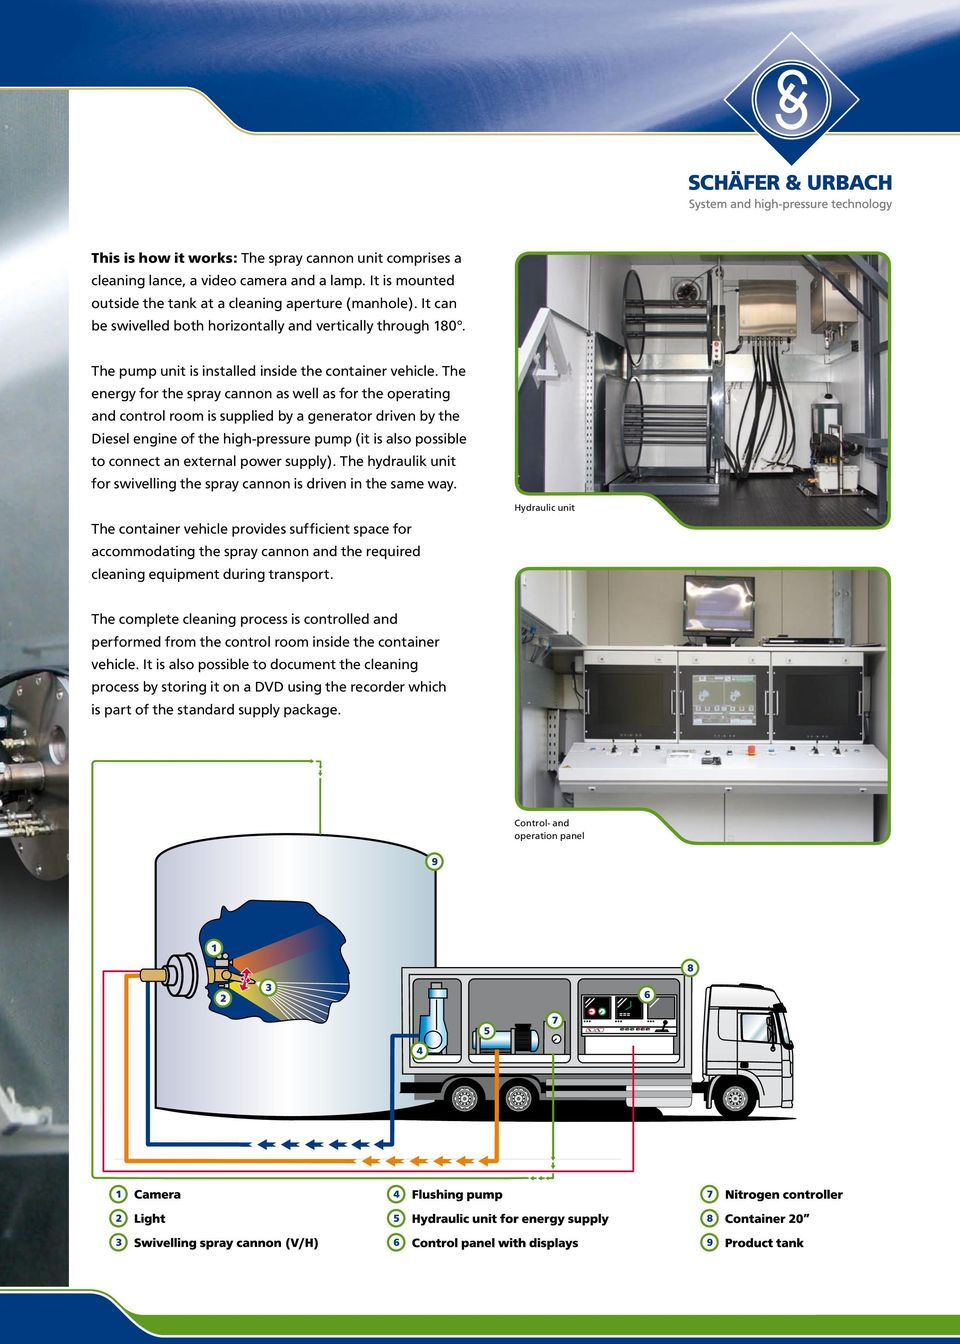 The energy for the spray cannon as well as for the operating and control room is supplied by a generator driven by the Diesel engine of the high-pressure pump (it is also possible to connect an